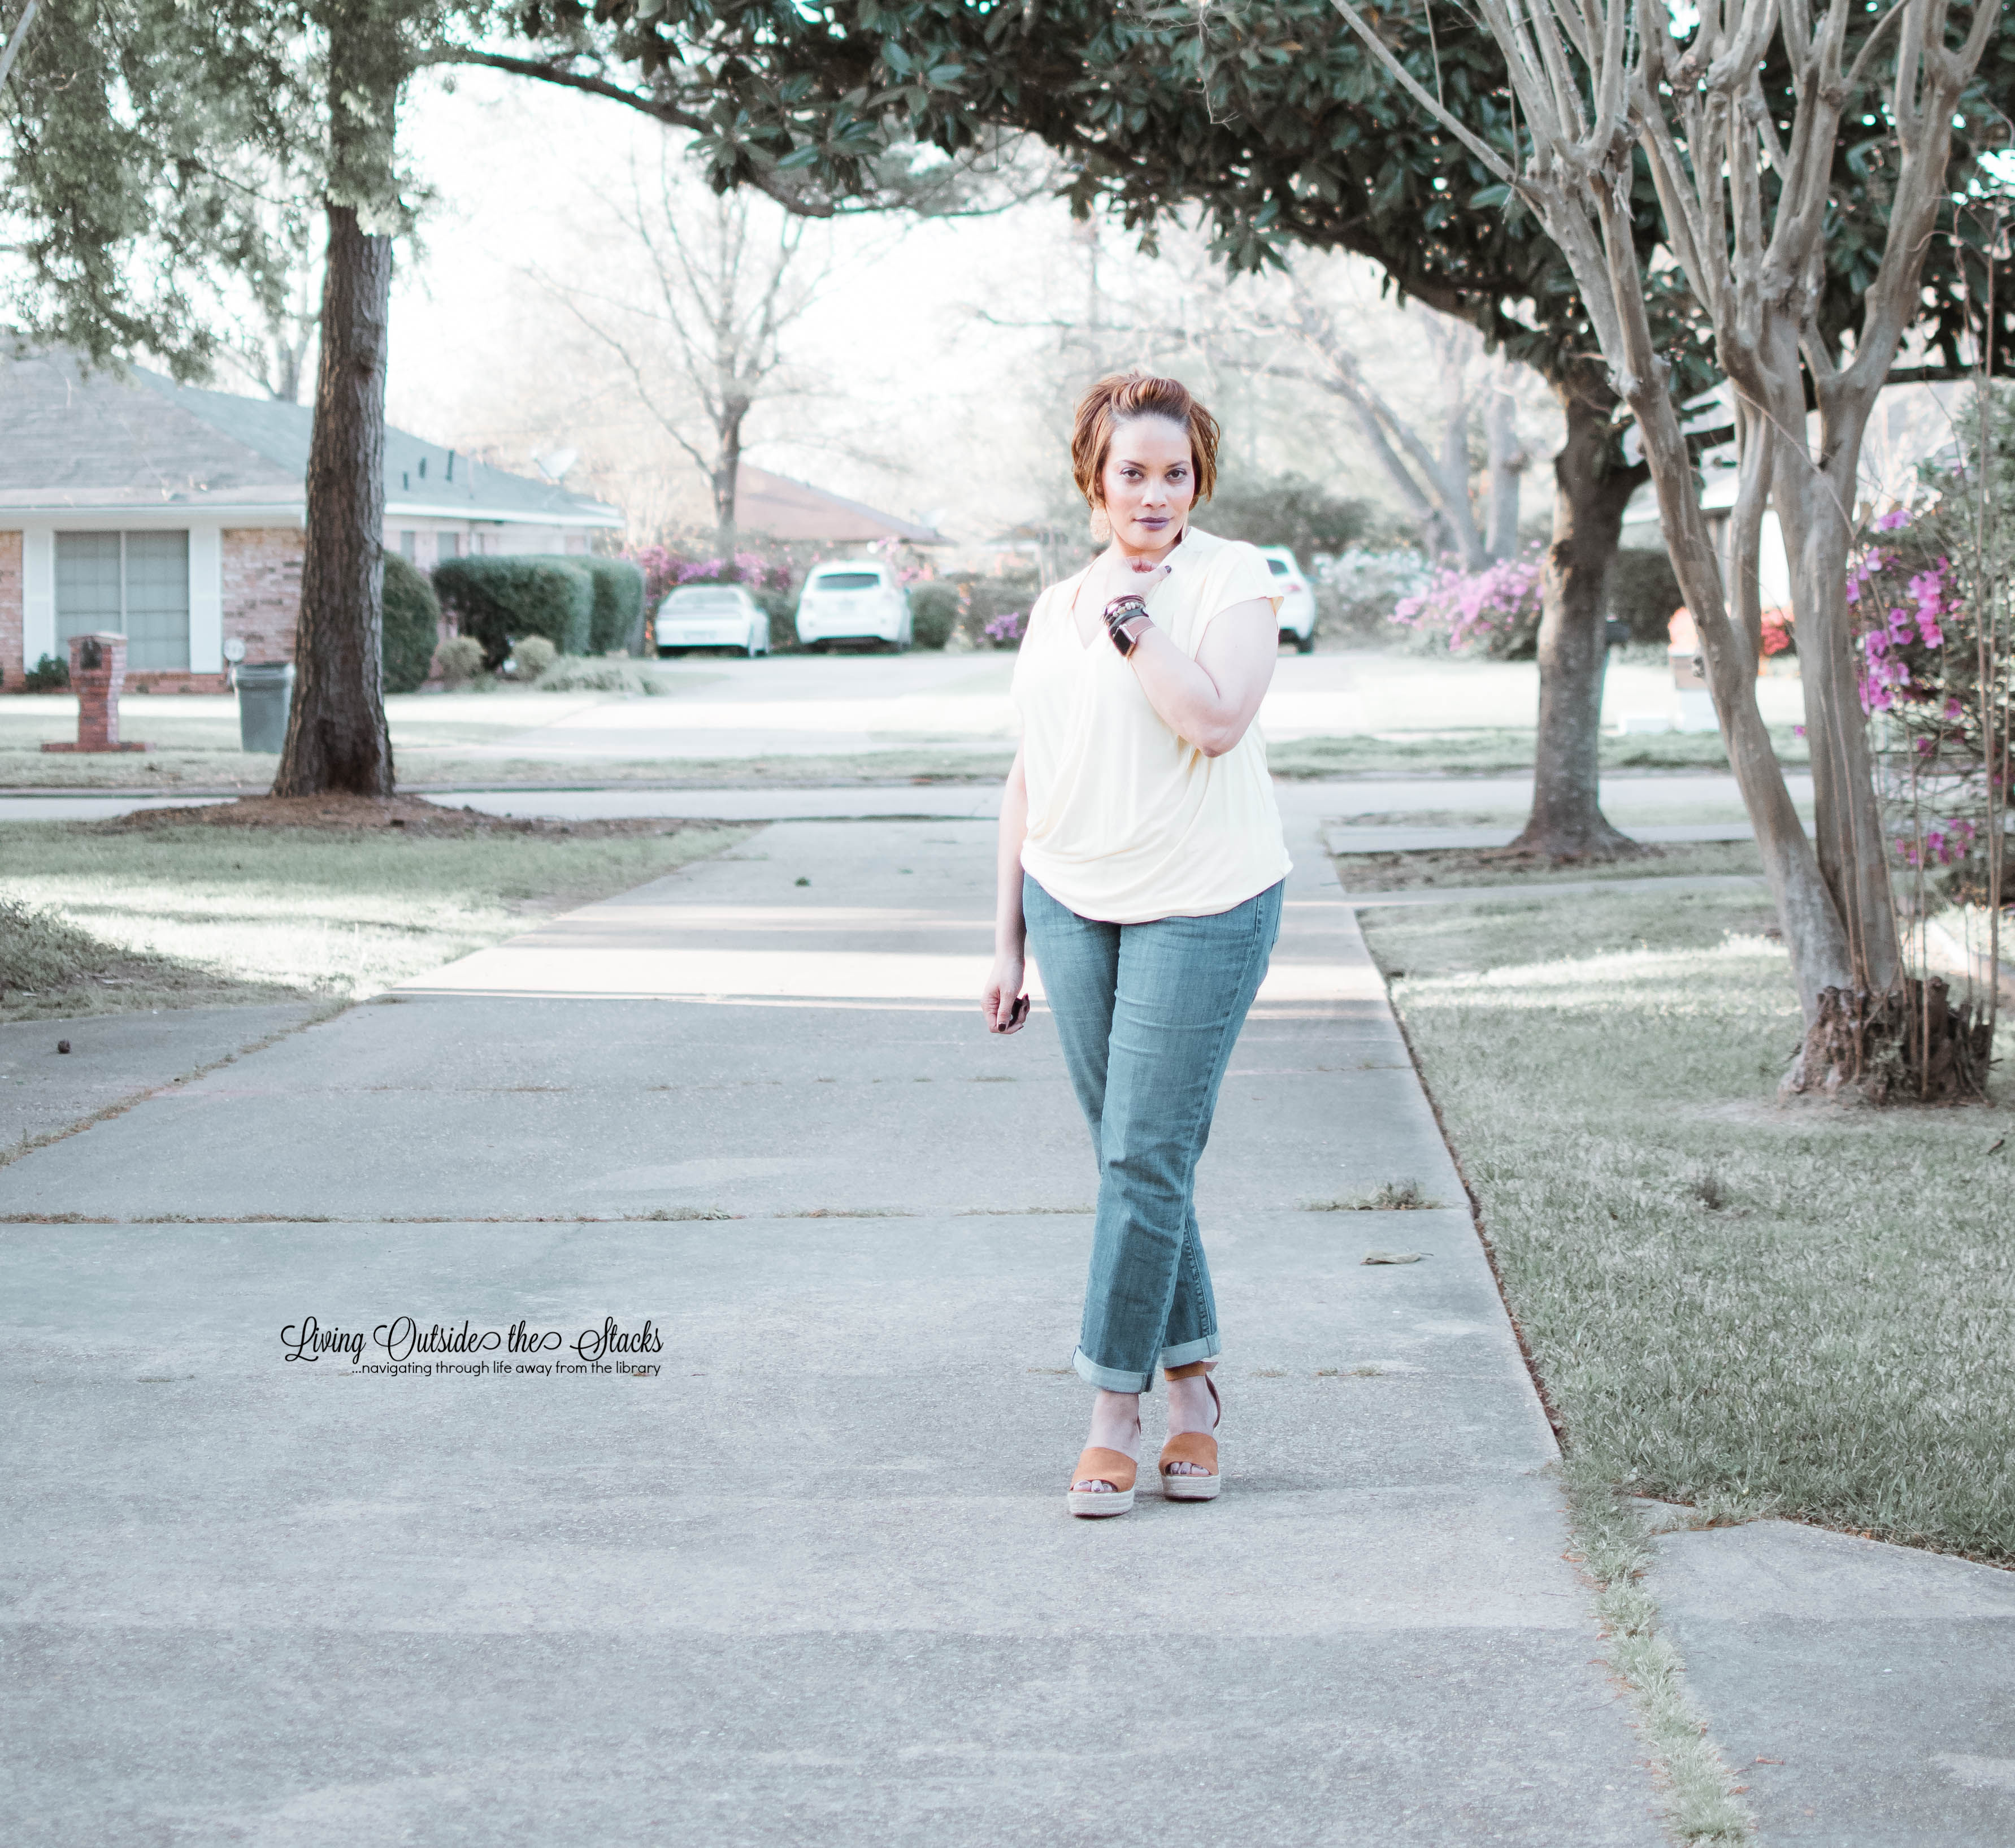 Daenel T {living outside the stacks} Yellow Wrap Top Boyfriend Jeans and Wedge Sandals